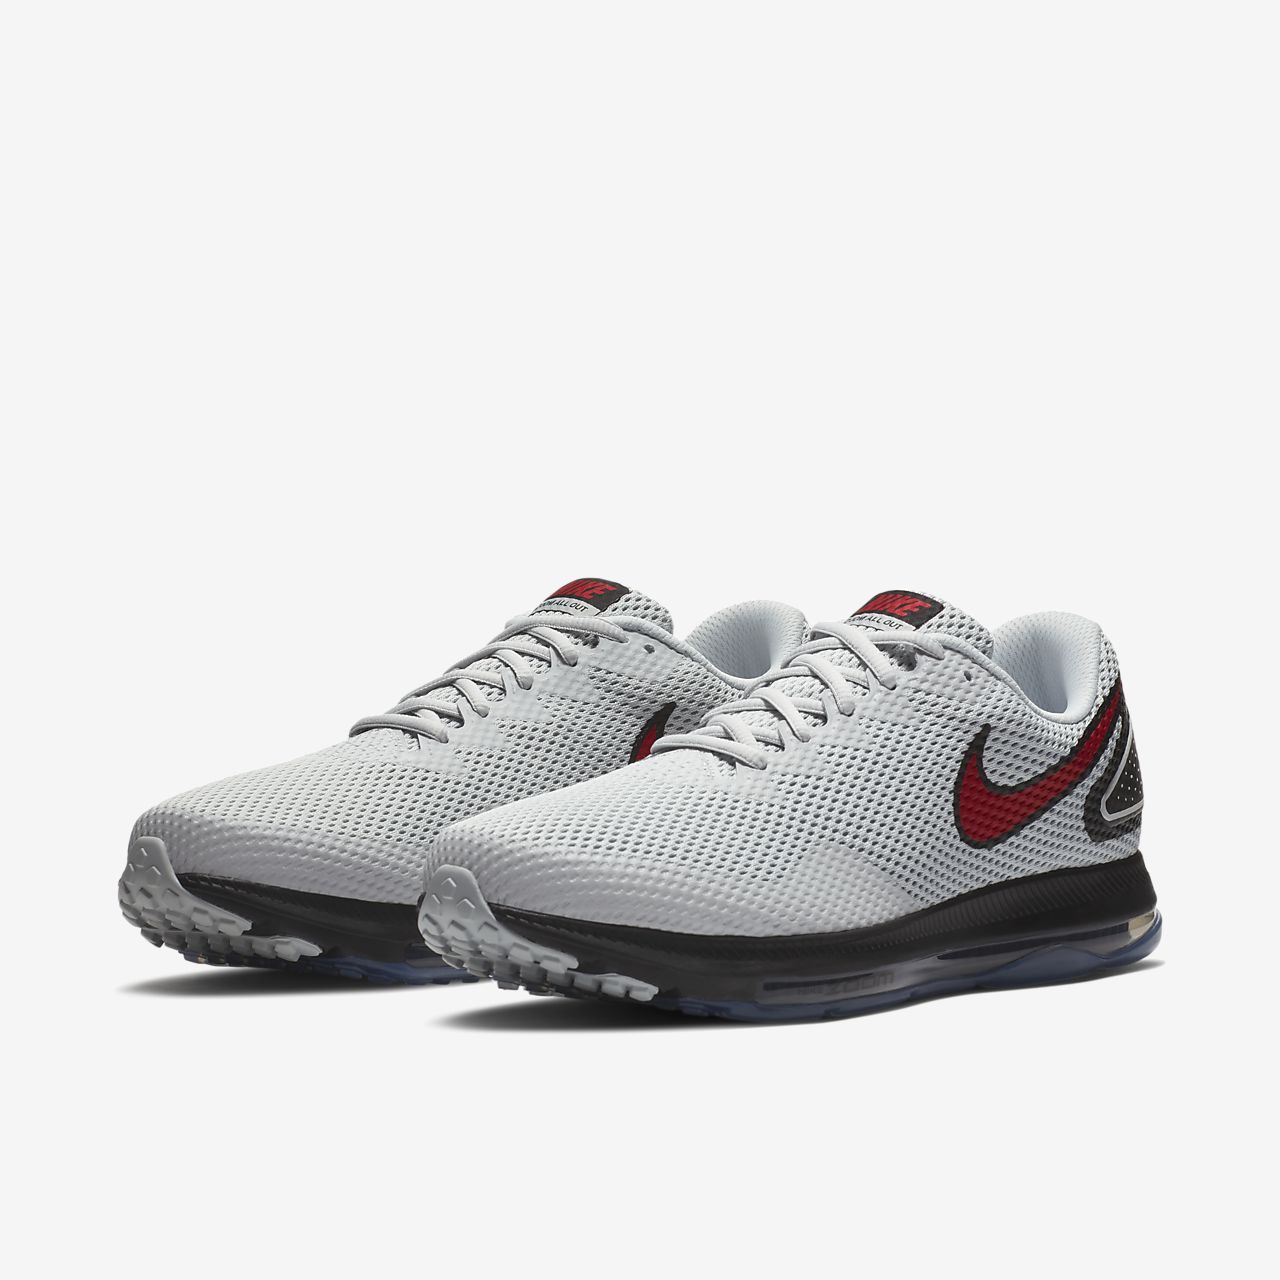 Nike Performance ZOOM ALL OUT LOW  Neutral running shoes  dark team redblackuniversity red   RLKWqeEp